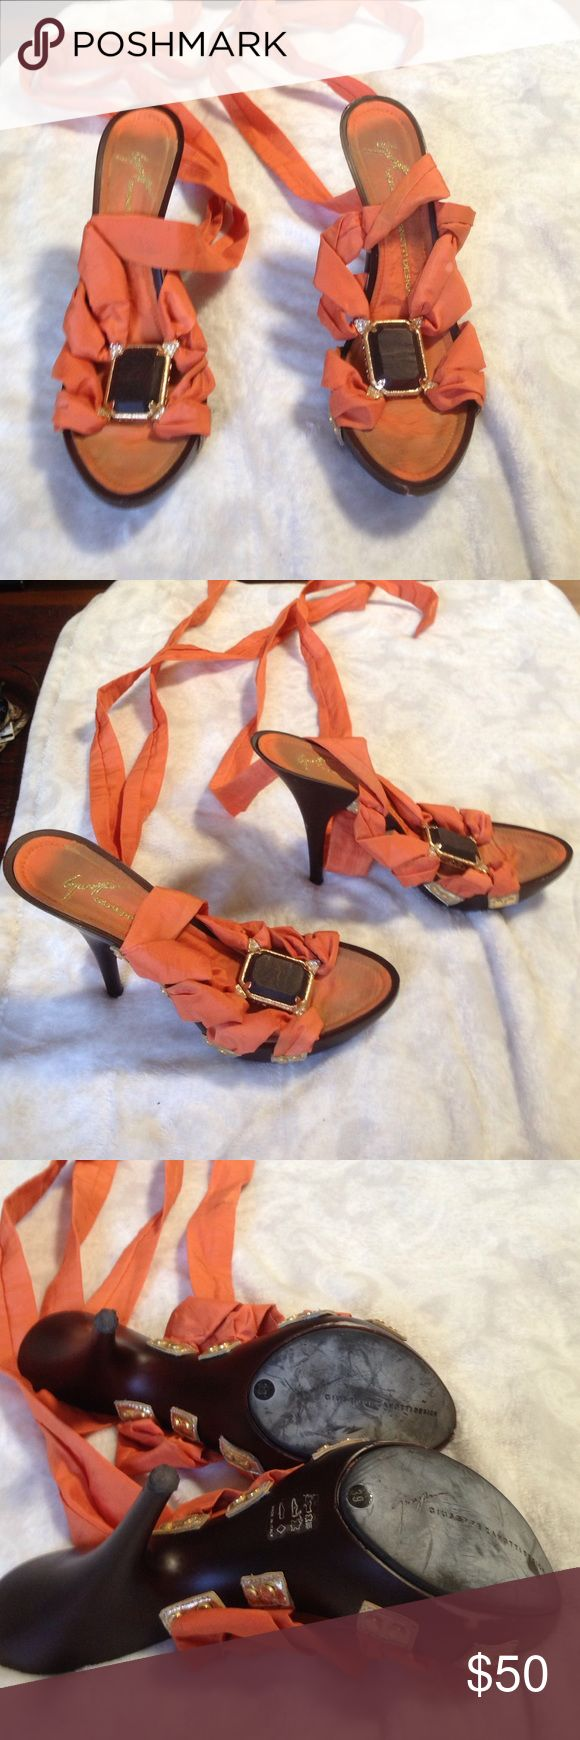 Giuseppe heels 100% authentic. Worn but life left. Very pretty heels that lace up Giuseppe Zanotti Shoes